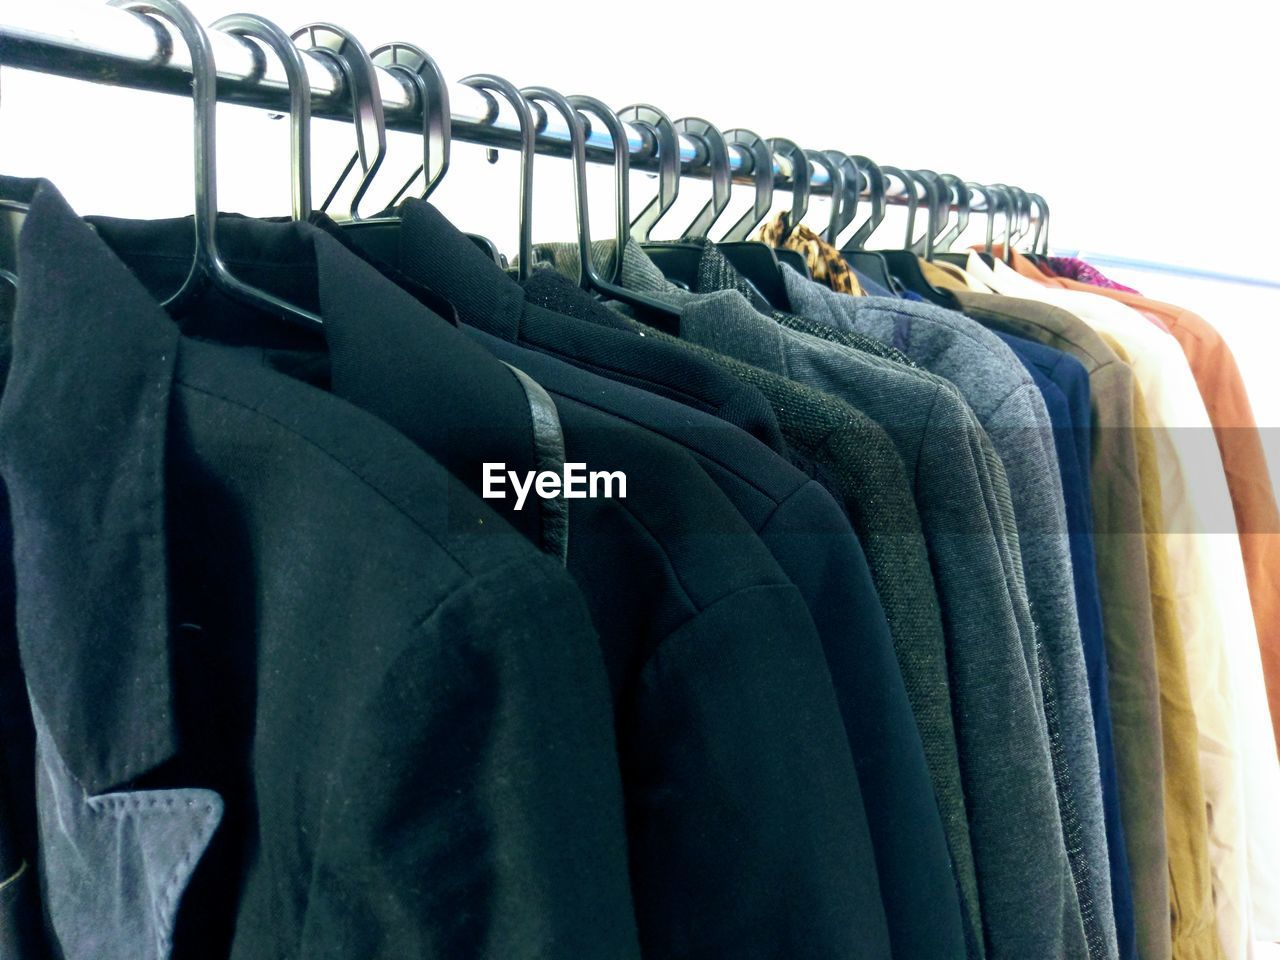 MIDSECTION OF CLOTHES HANGING ON RACK